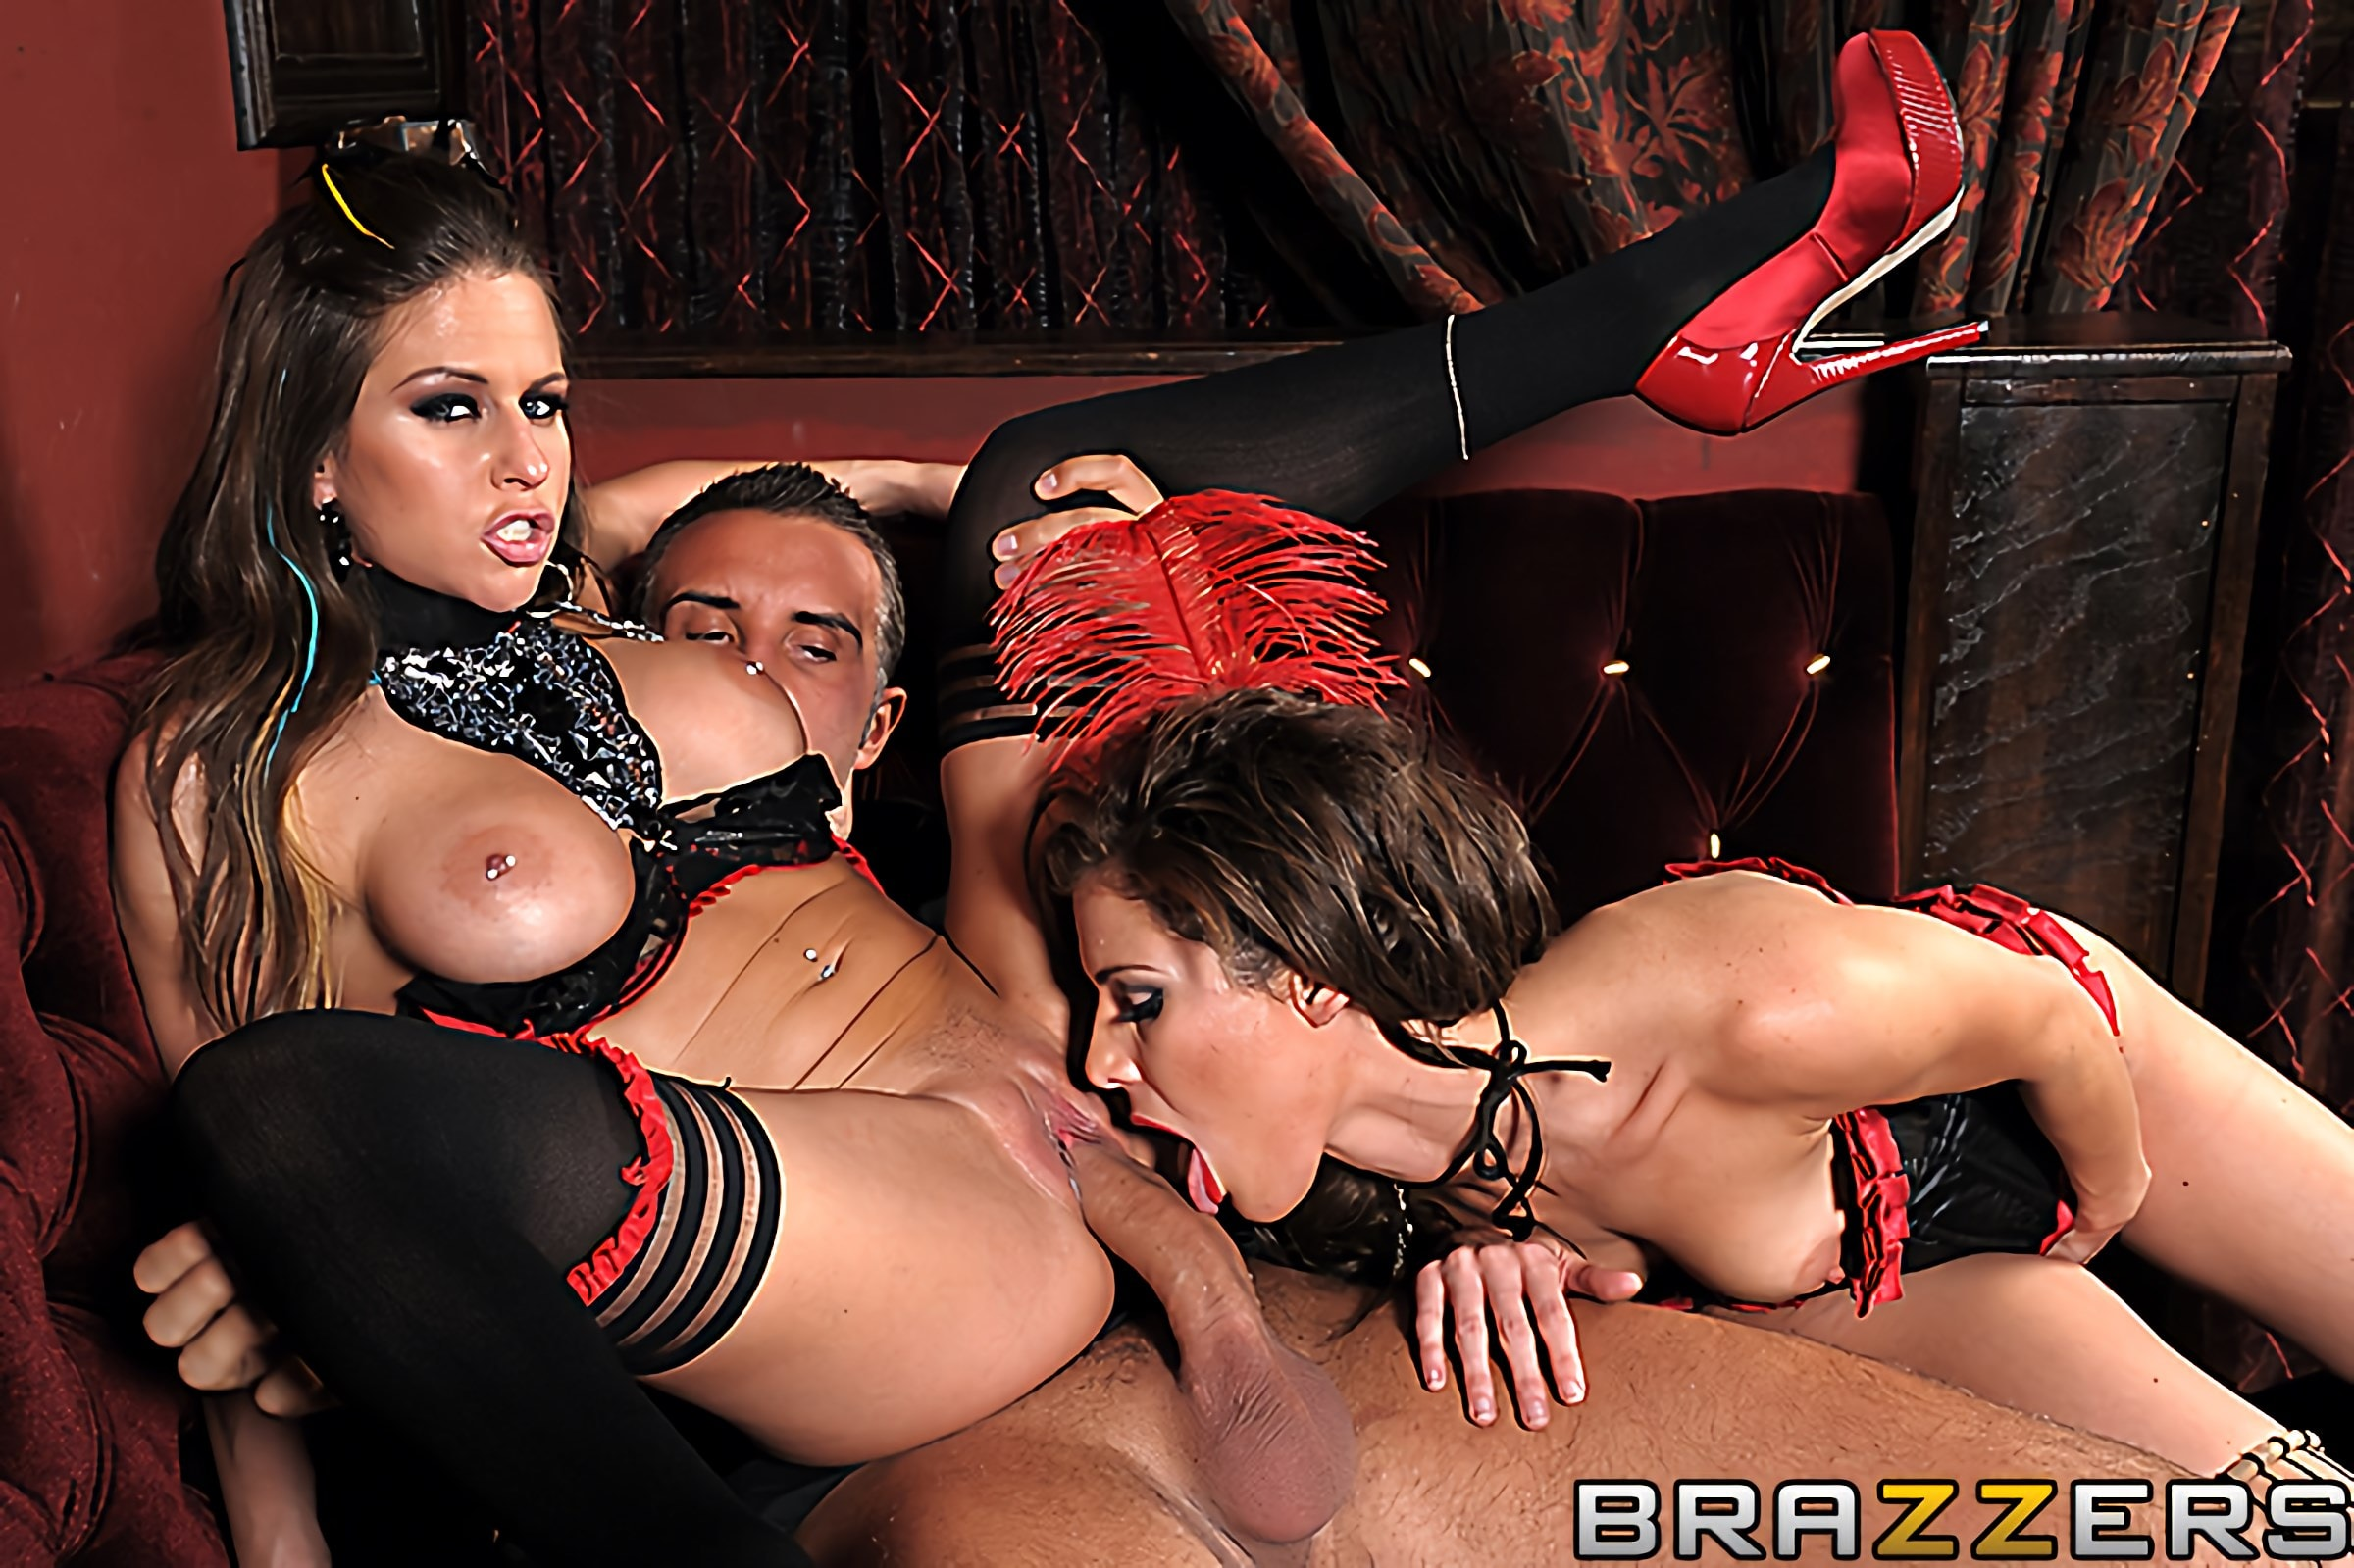 Brazzers 'Caged Pussy' starring Rachel RoXXX (photo 11)